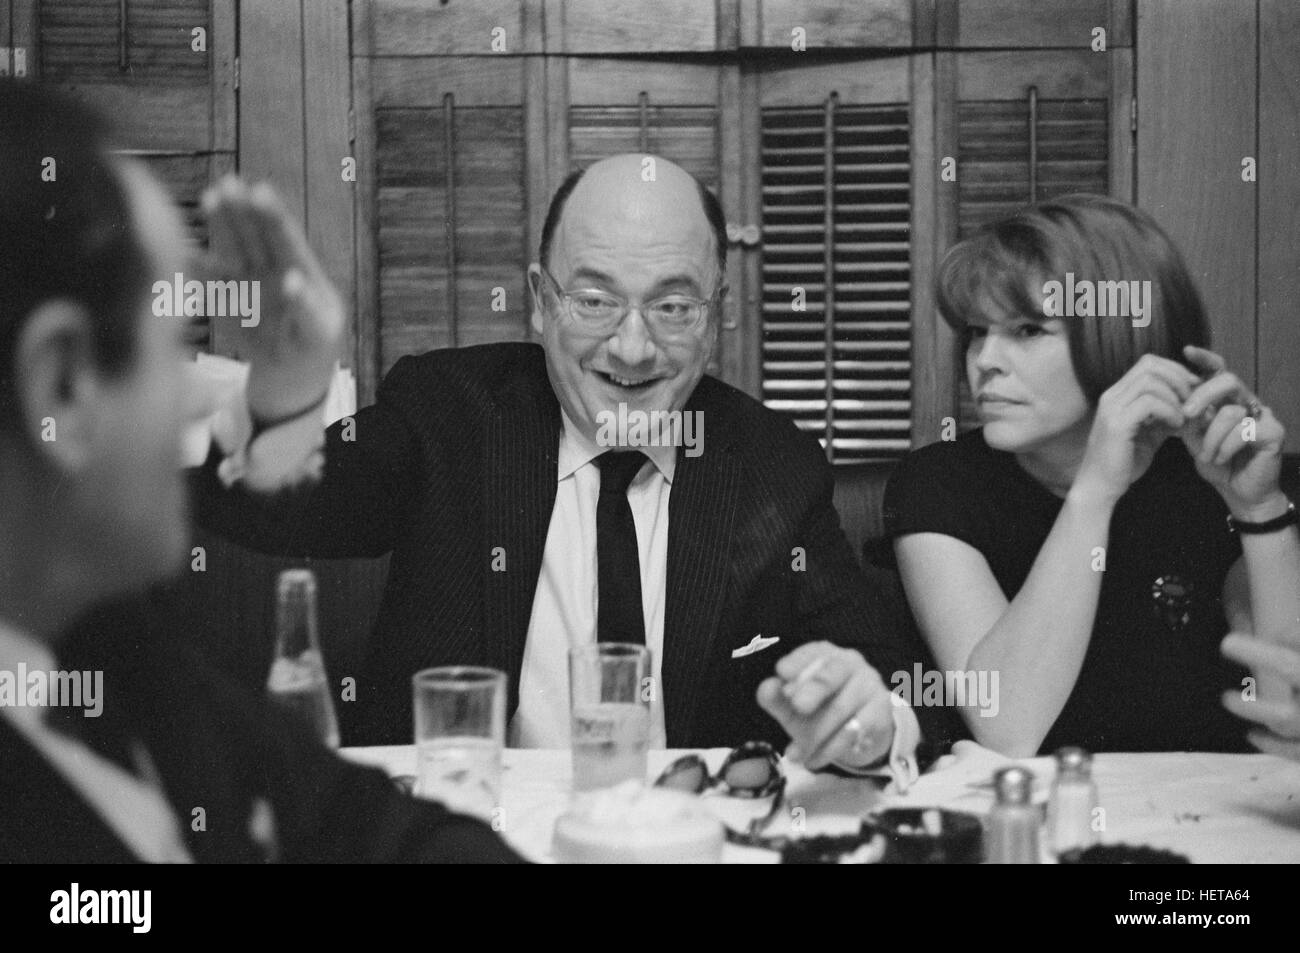 Abe Burrows, dining with the cast of the 1966 play Cactus Flower. Anne Jackson is on the right. - Stock Image